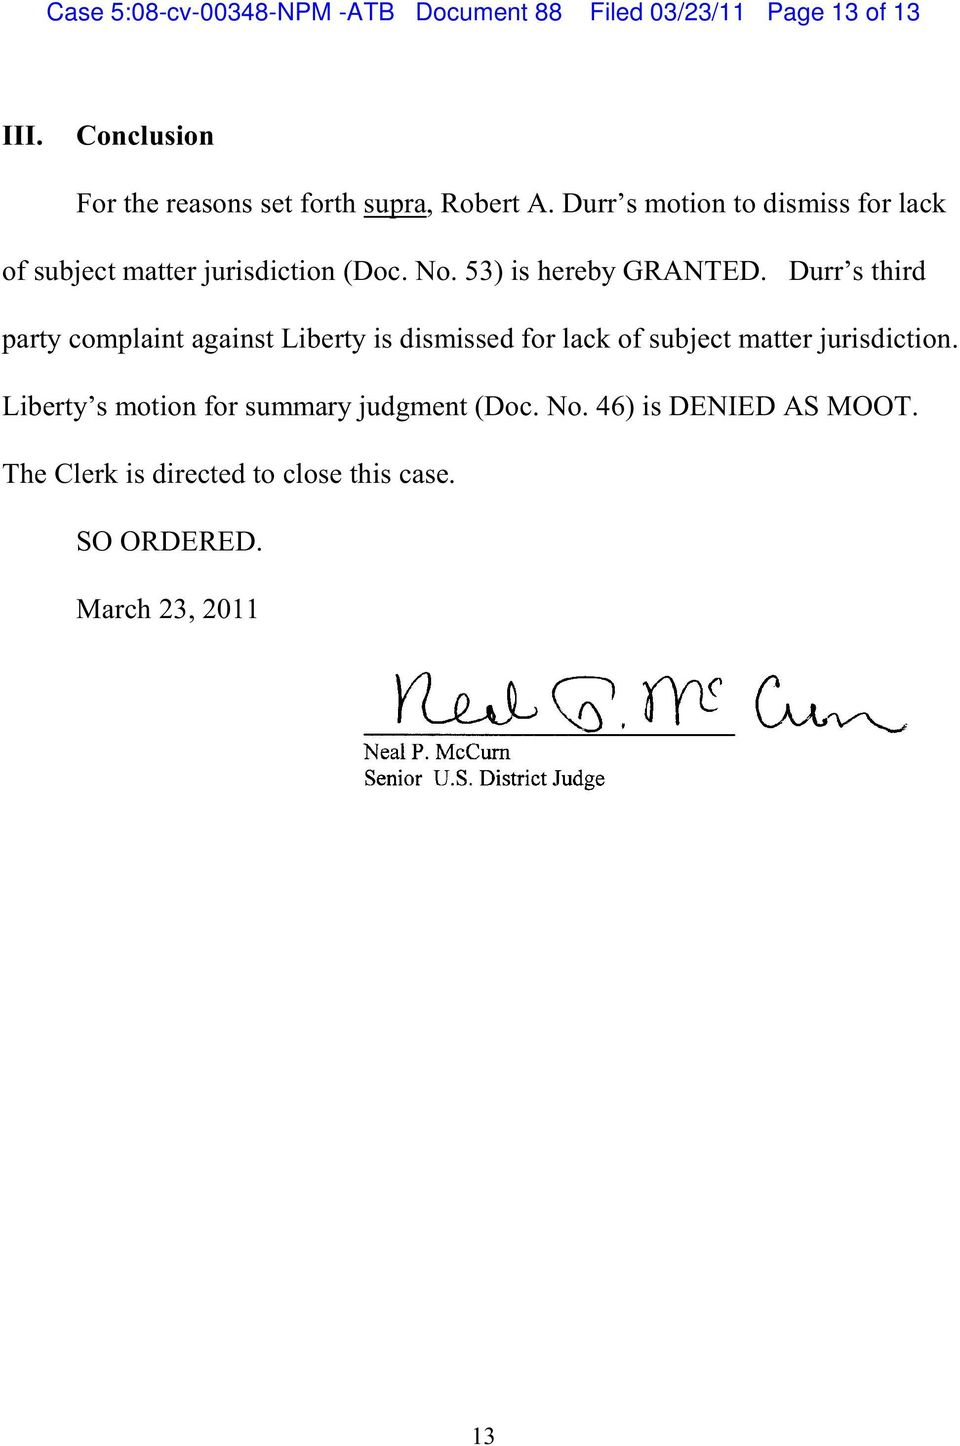 Durr s motion to dismiss for lack of subject matter jurisdiction (Doc. No. 53) is hereby GRANTED.